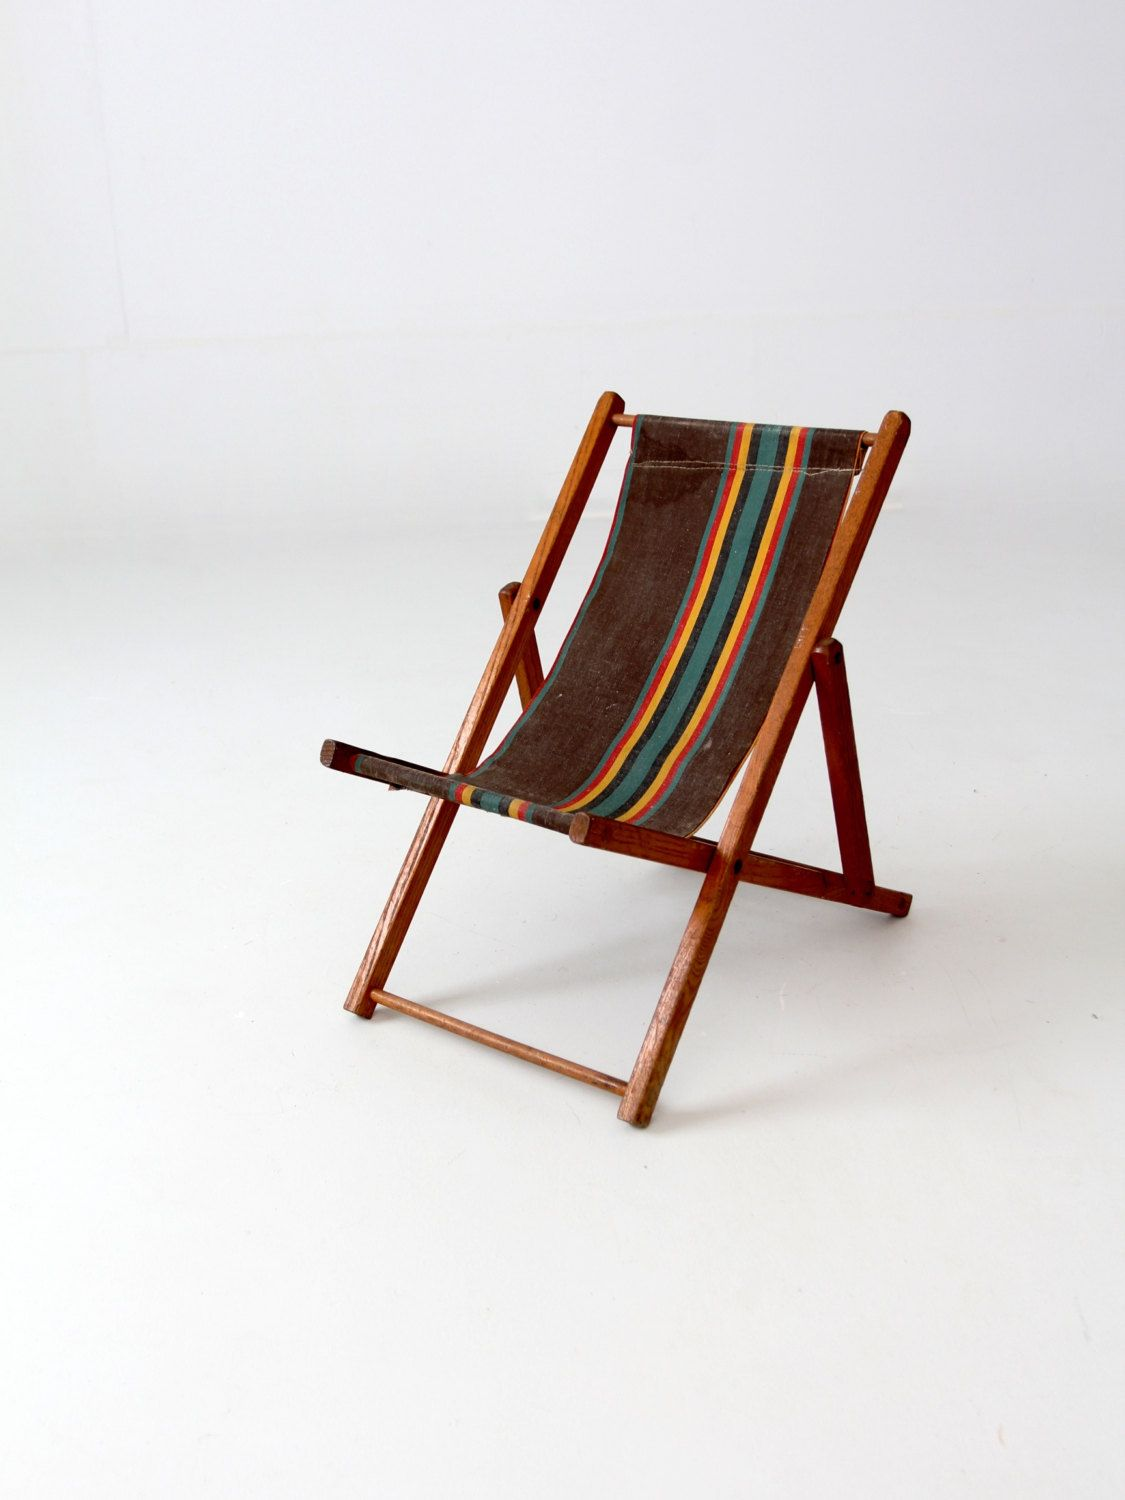 Vintage Children S Deck Chair Folding Beach By 86home On Etsy Https